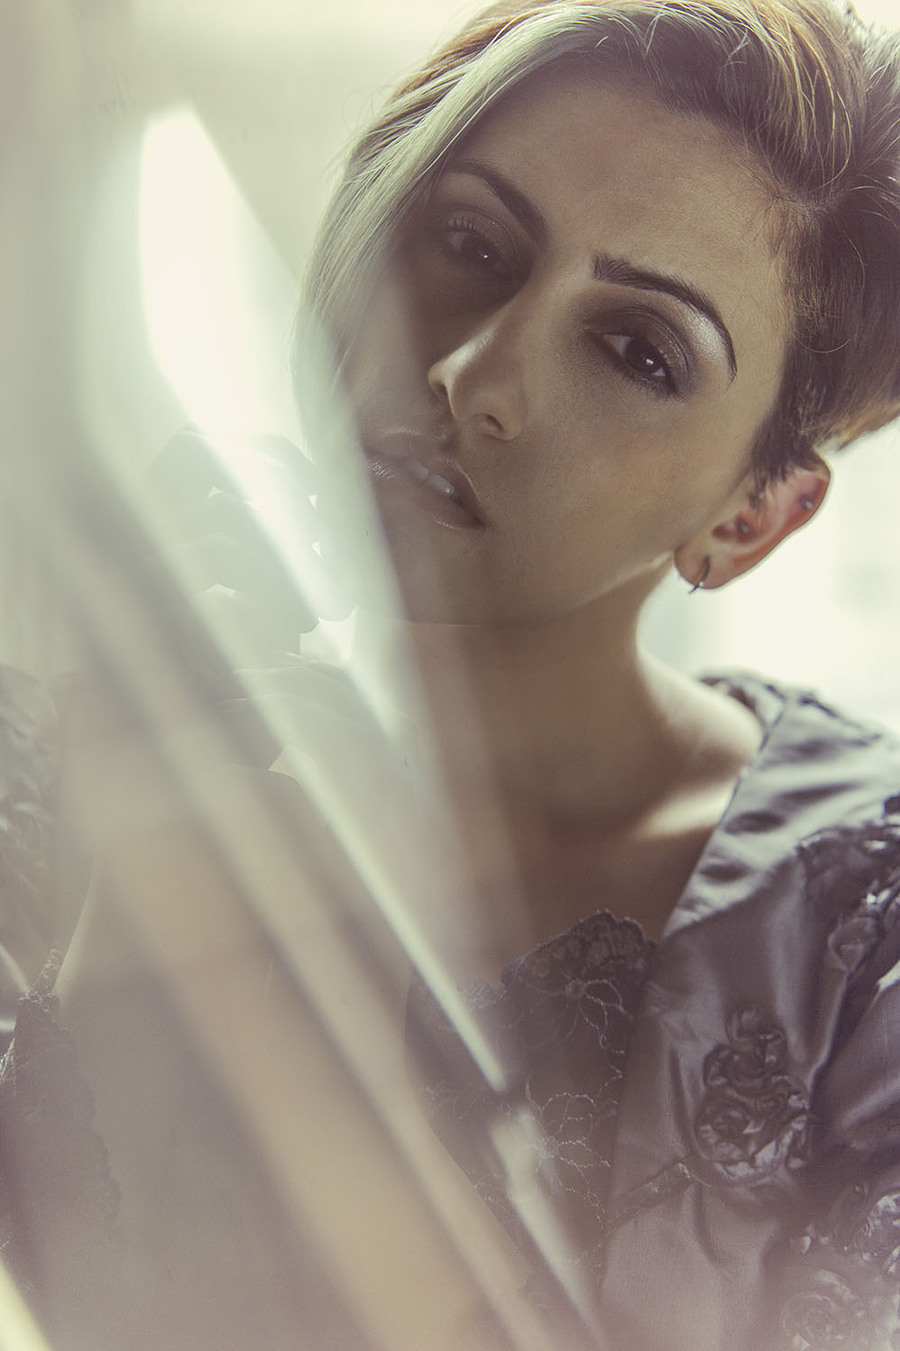 Pit / Model Sophia Andreou, Makeup by Laura Shipman MUAH / Uploaded 18th August 2014 @ 11:55 PM